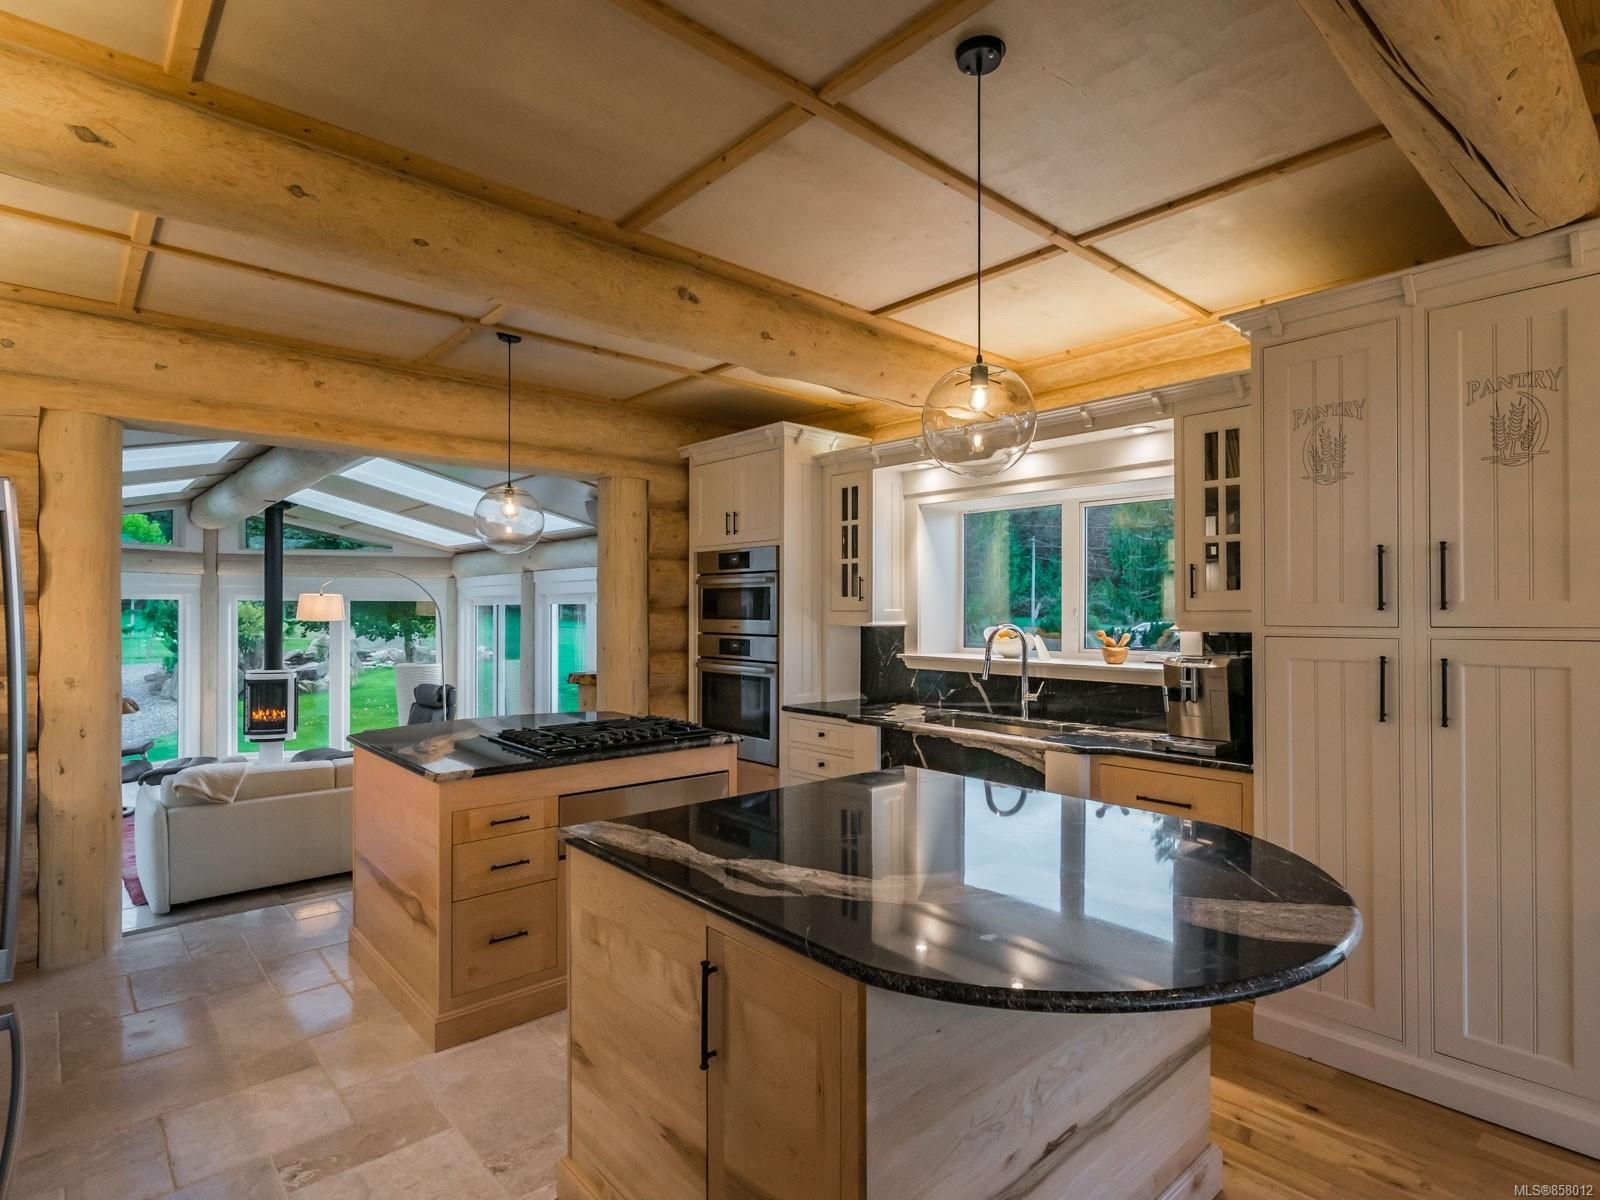 Photo 22: Photos: 6030 MINE Rd in : NI Port McNeill House for sale (North Island)  : MLS®# 858012